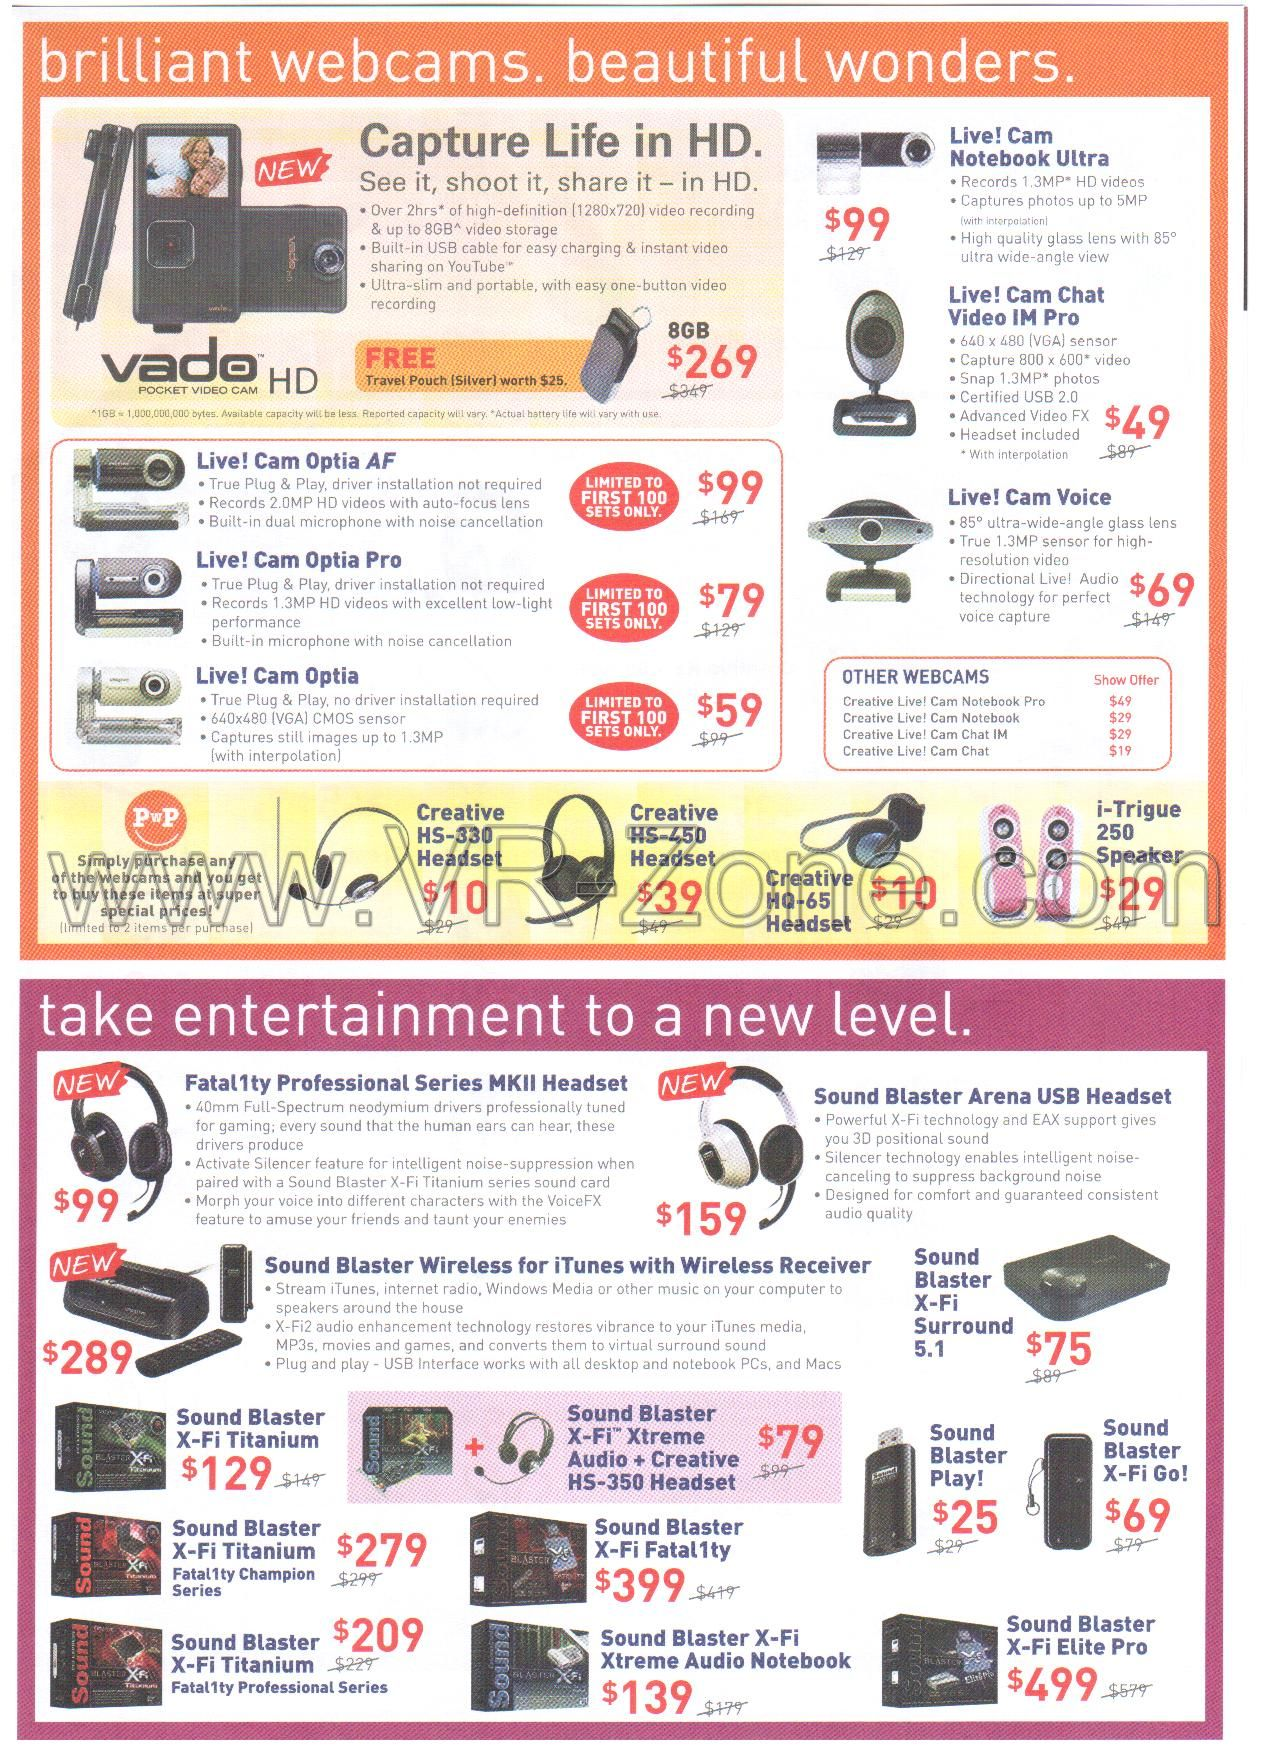 Comex 2009 price list image brochure of Creative Webcam Vado Live Fatal1ty SoundBlaster X-Fi